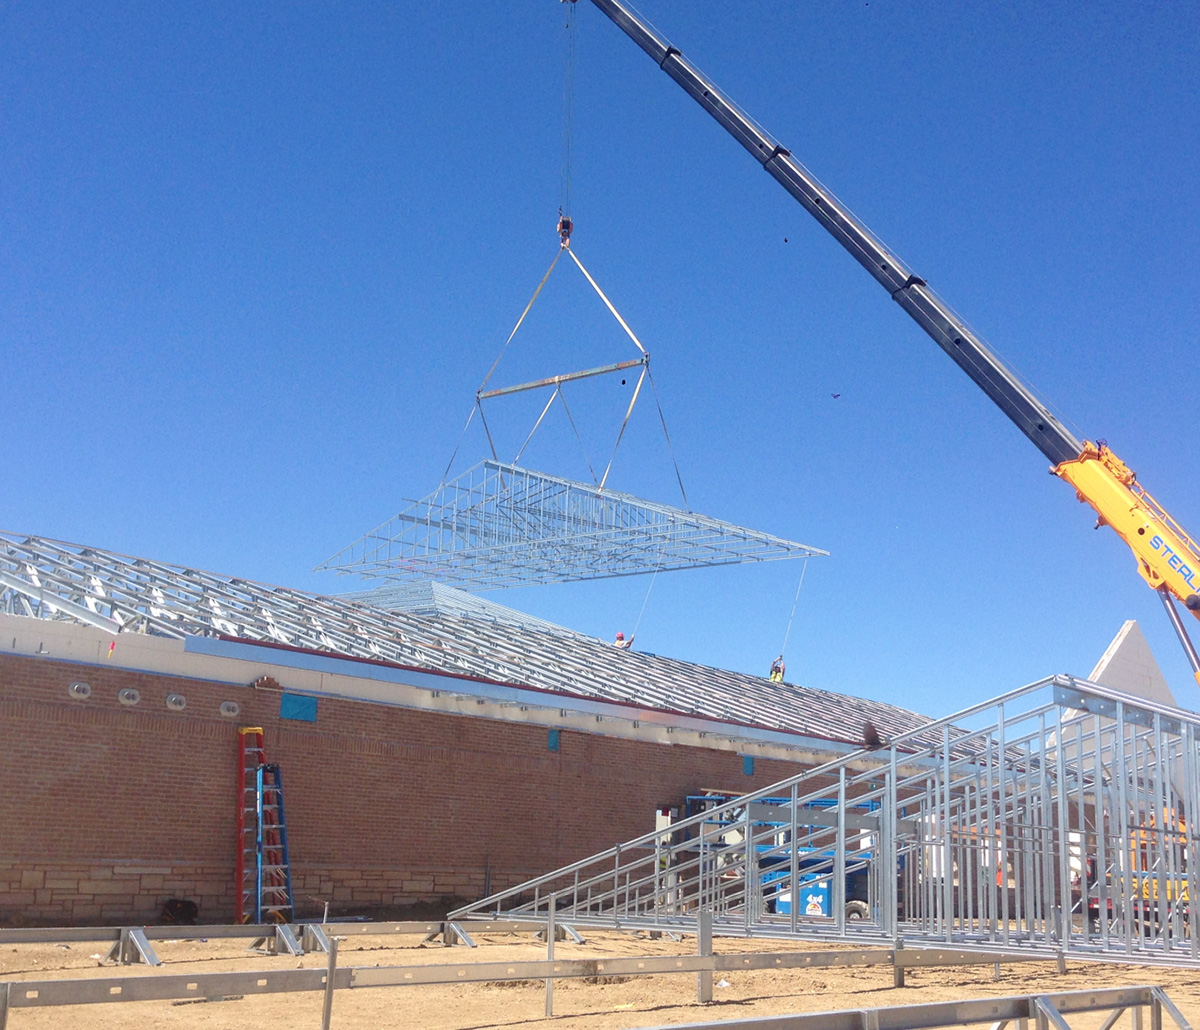 MiTek Ultra-Span Roof Truss Engineered Systems Products - Cold-formed steel roof truss being hoisted into place by crane